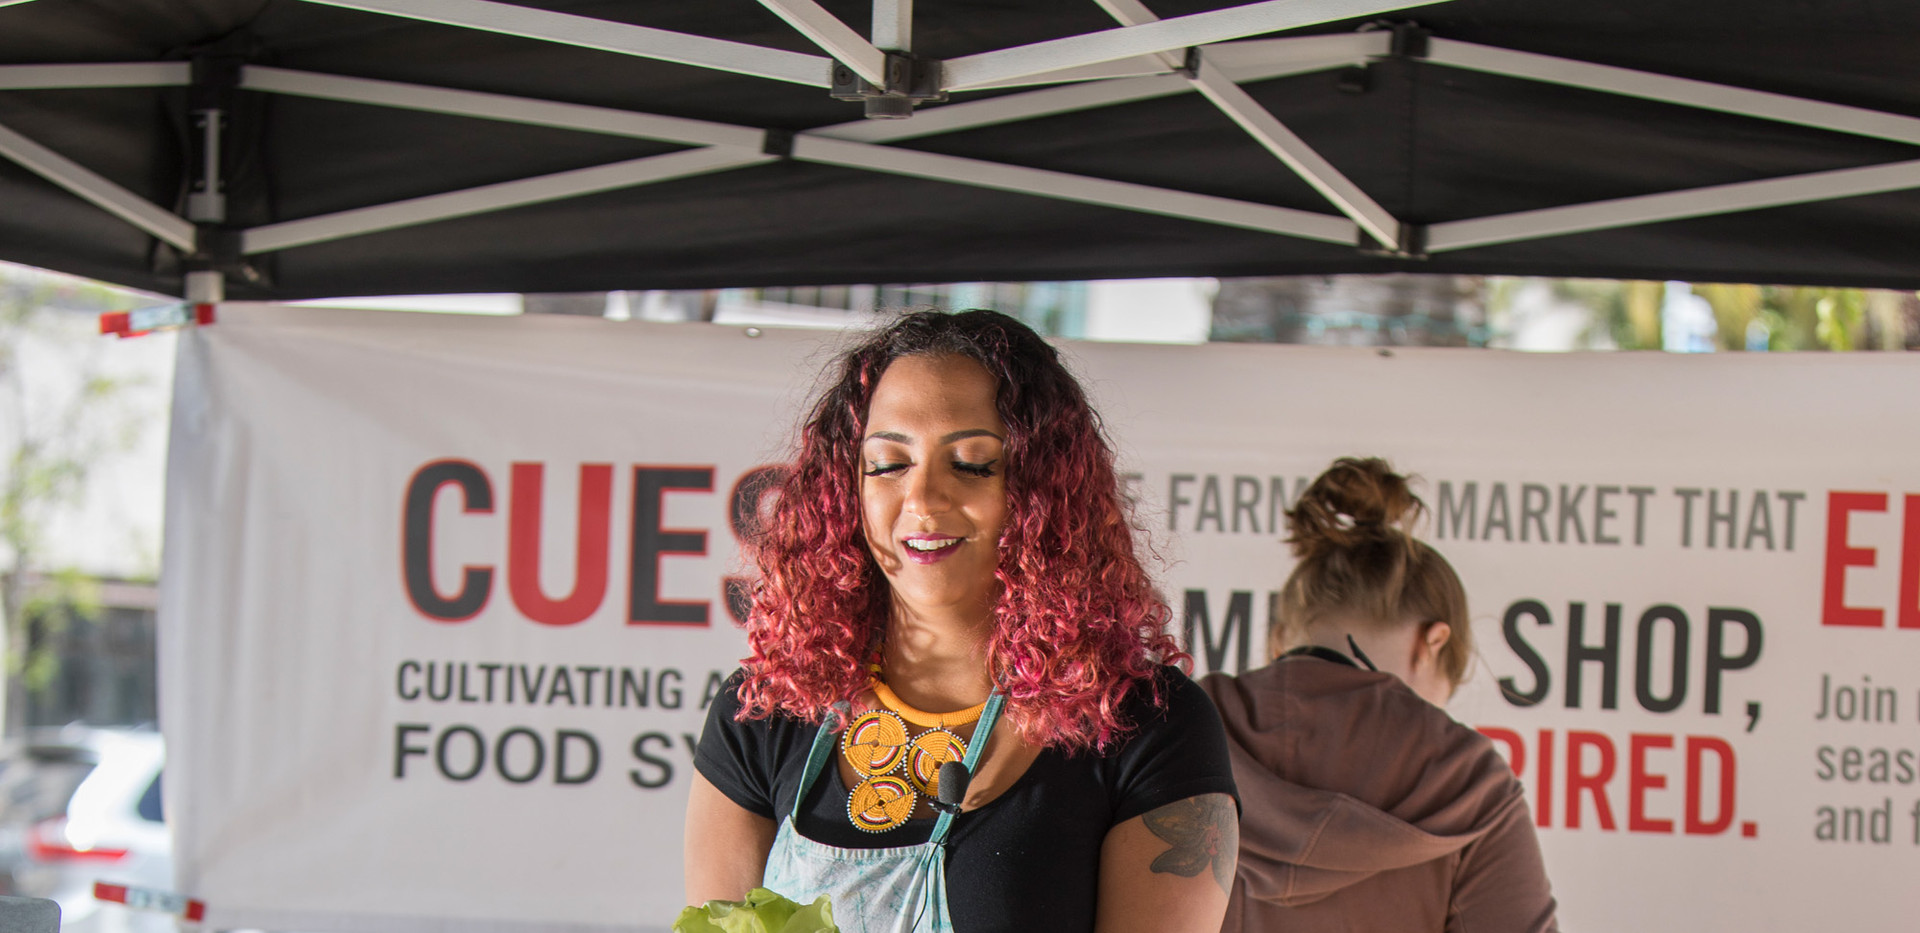 The Food Change: Good Food for All